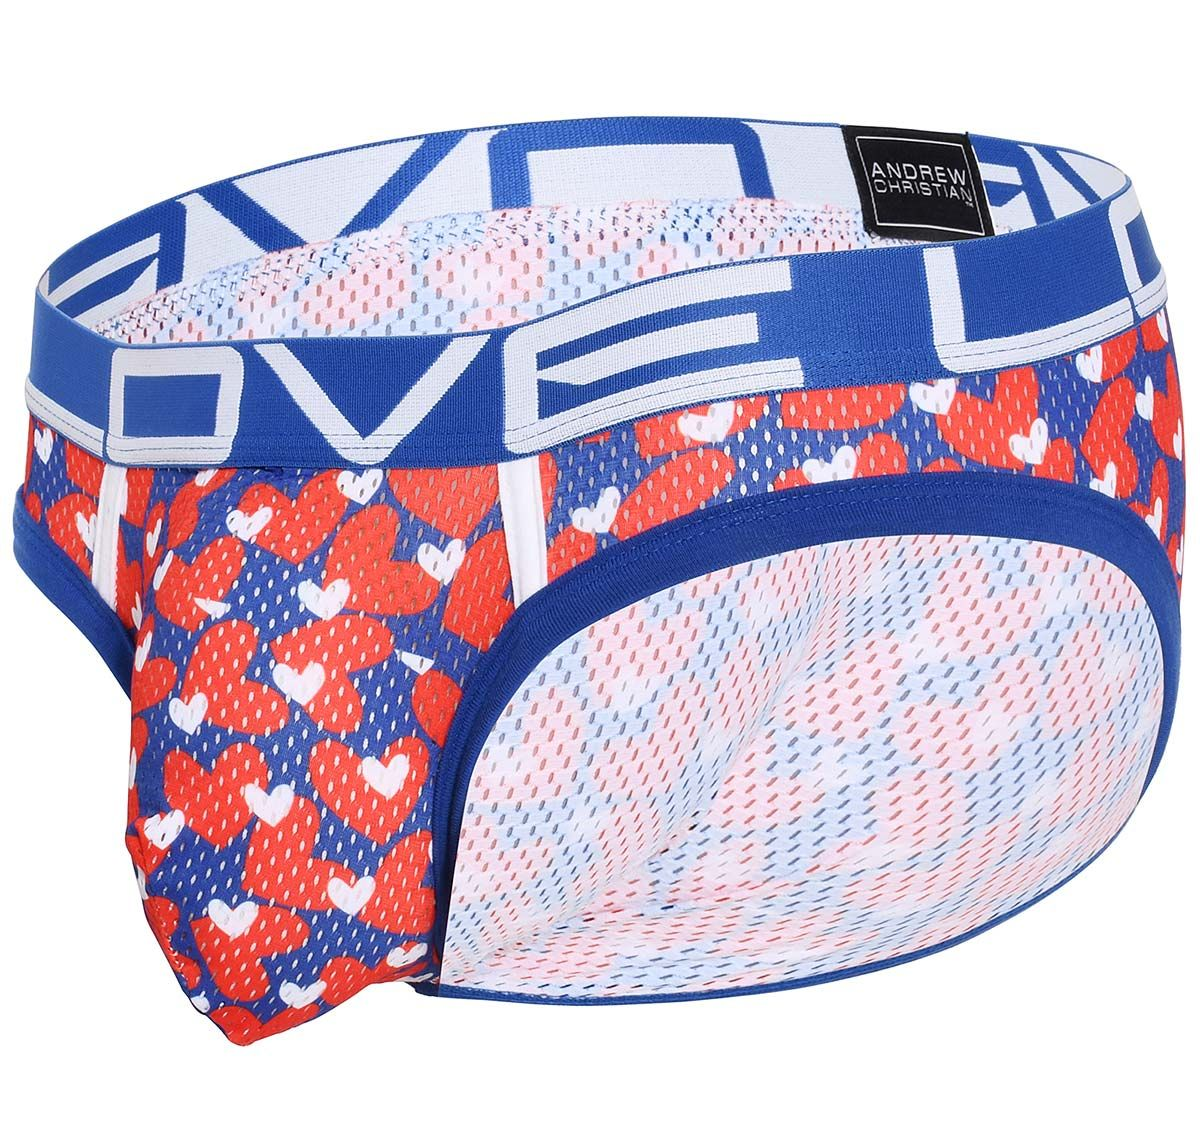 Andrew Christian Slip LOVE SWEETHEART MESH BRIEF with ALMOST NAKED 91541, multicolor